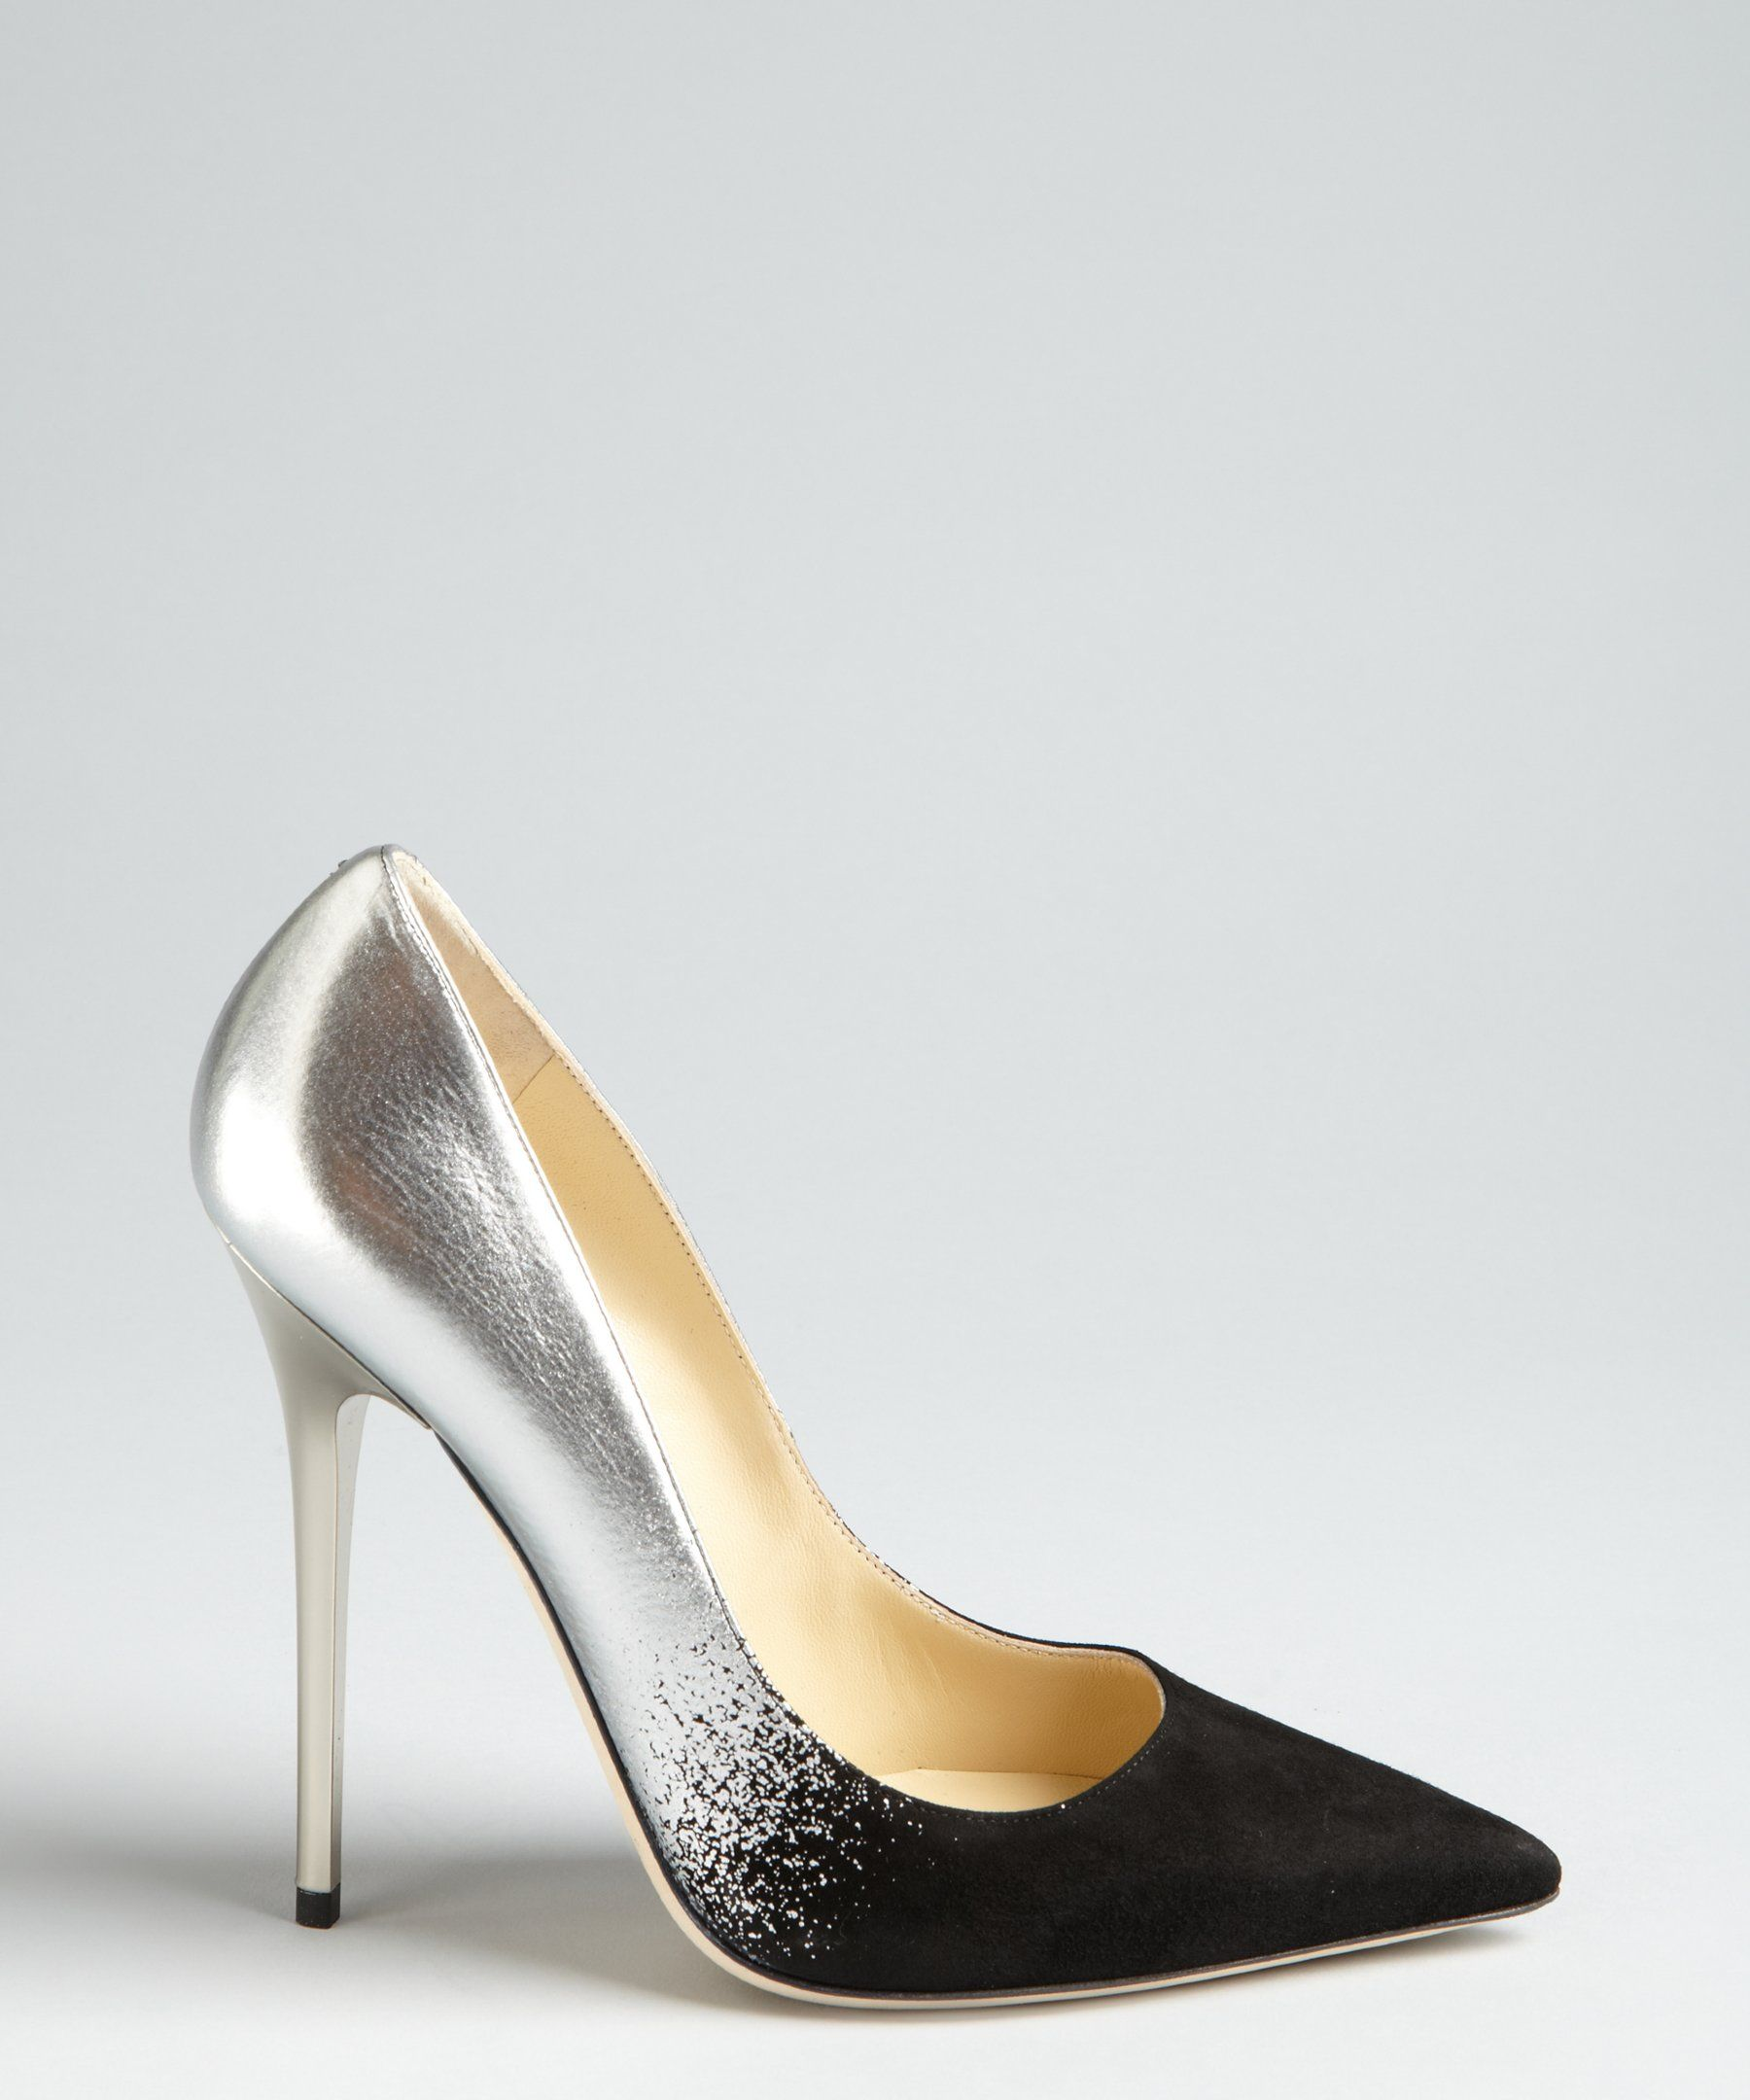 Jimmy Choo black suede and silver leather 'Anouk' pumps